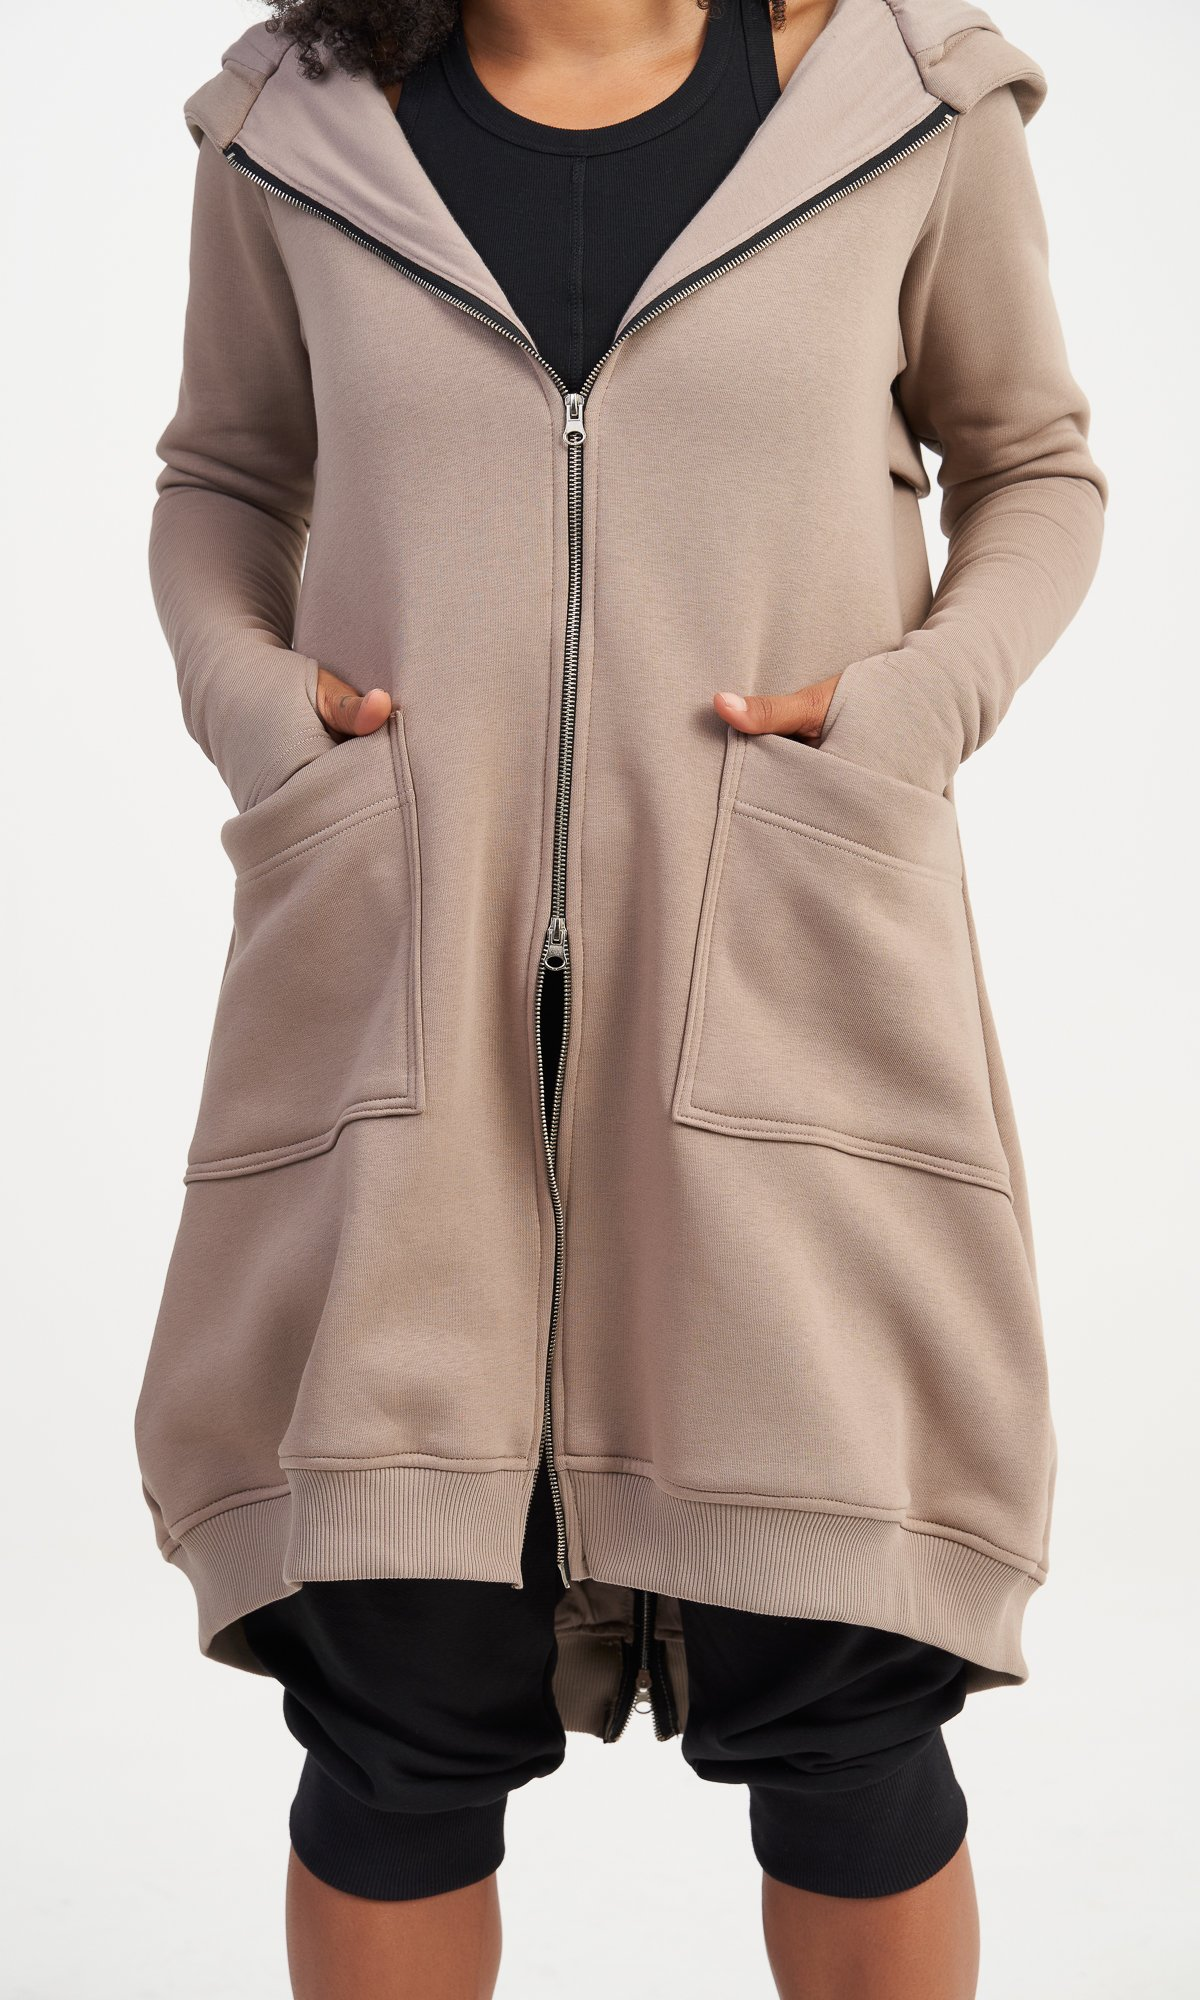 Long Zipper Hooded Sweatshirt